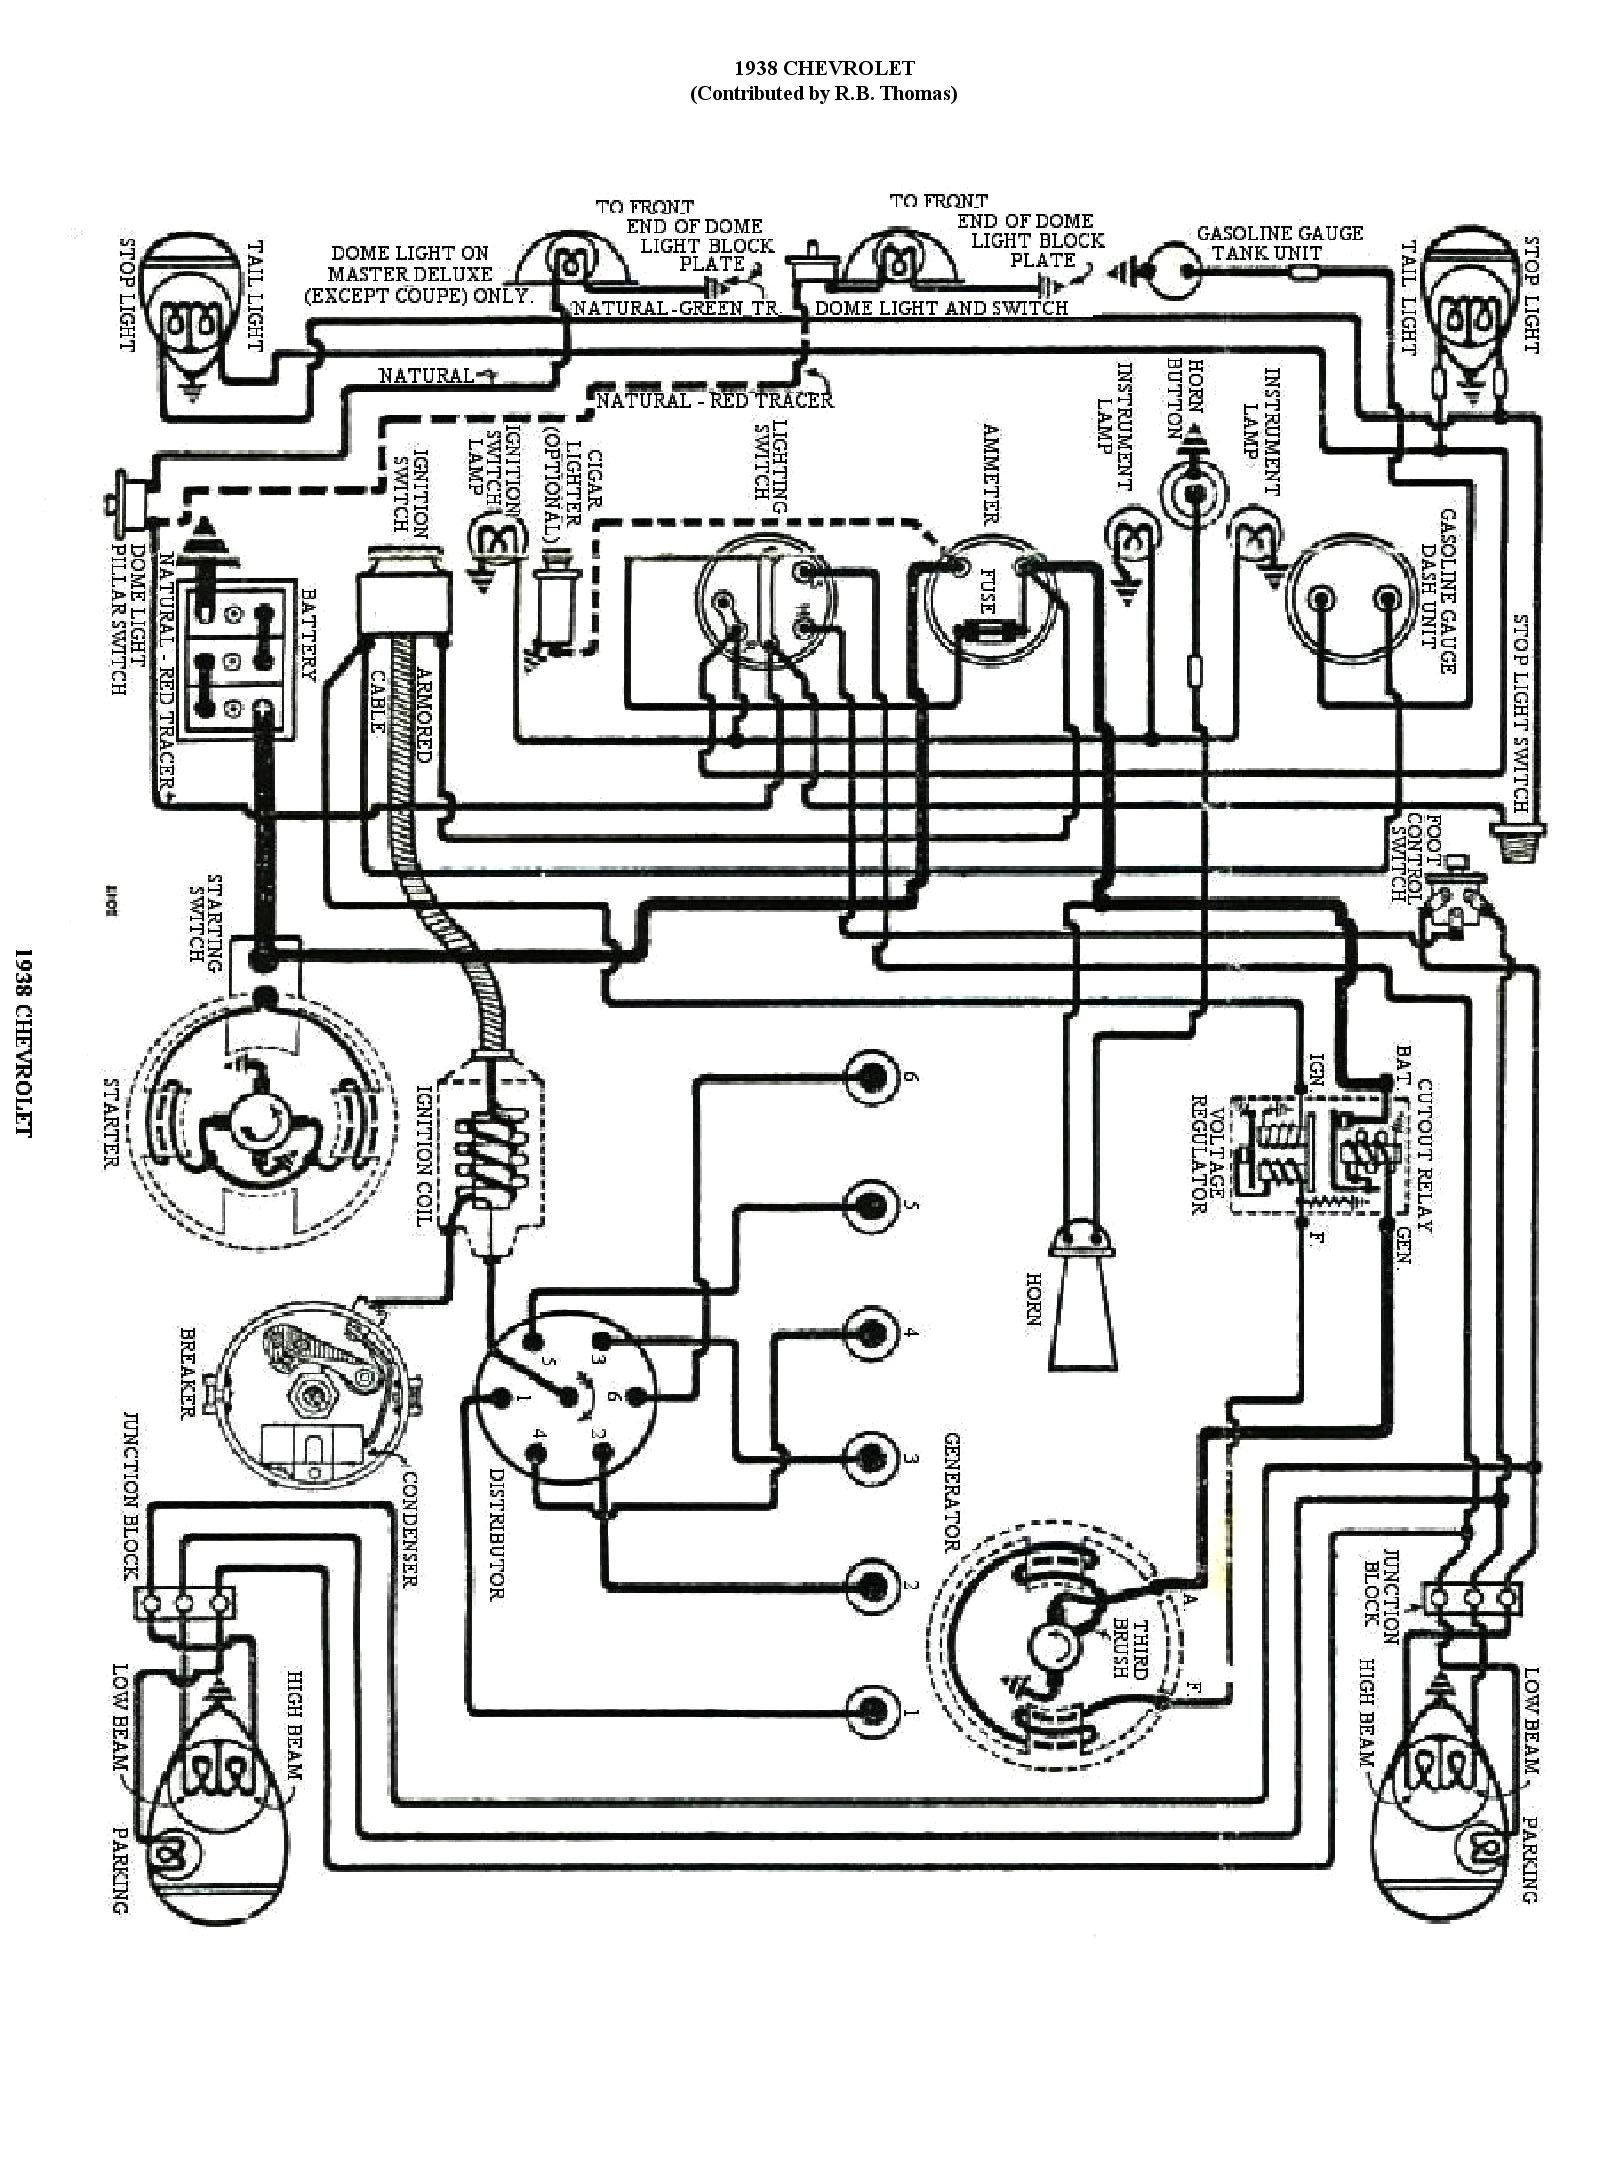 Chevy Wiring Diagrams 120 Volt Solenoid Switch Diagram 1938